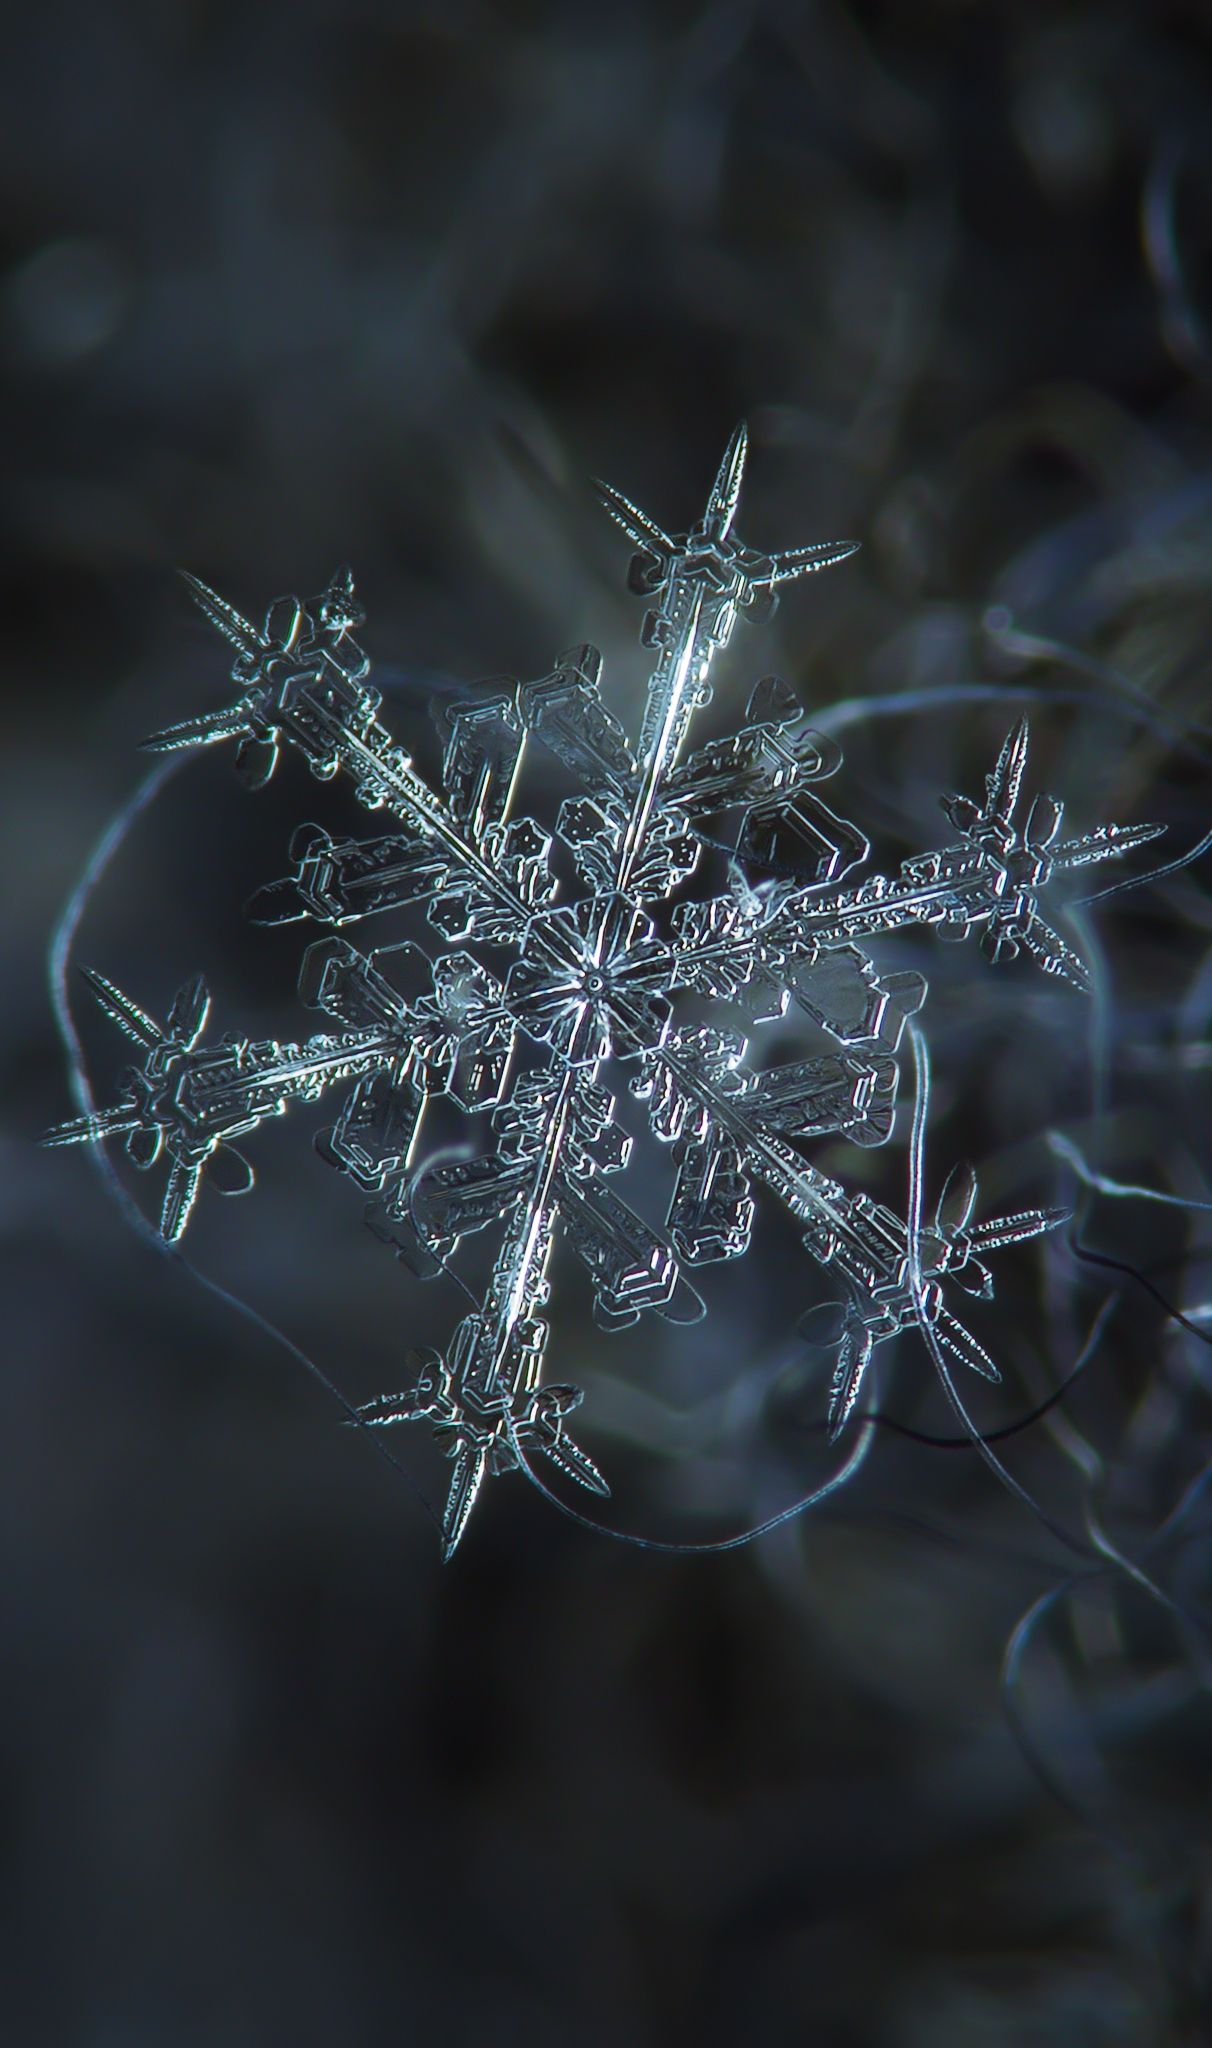 snowflake macro photography rigs and cameras